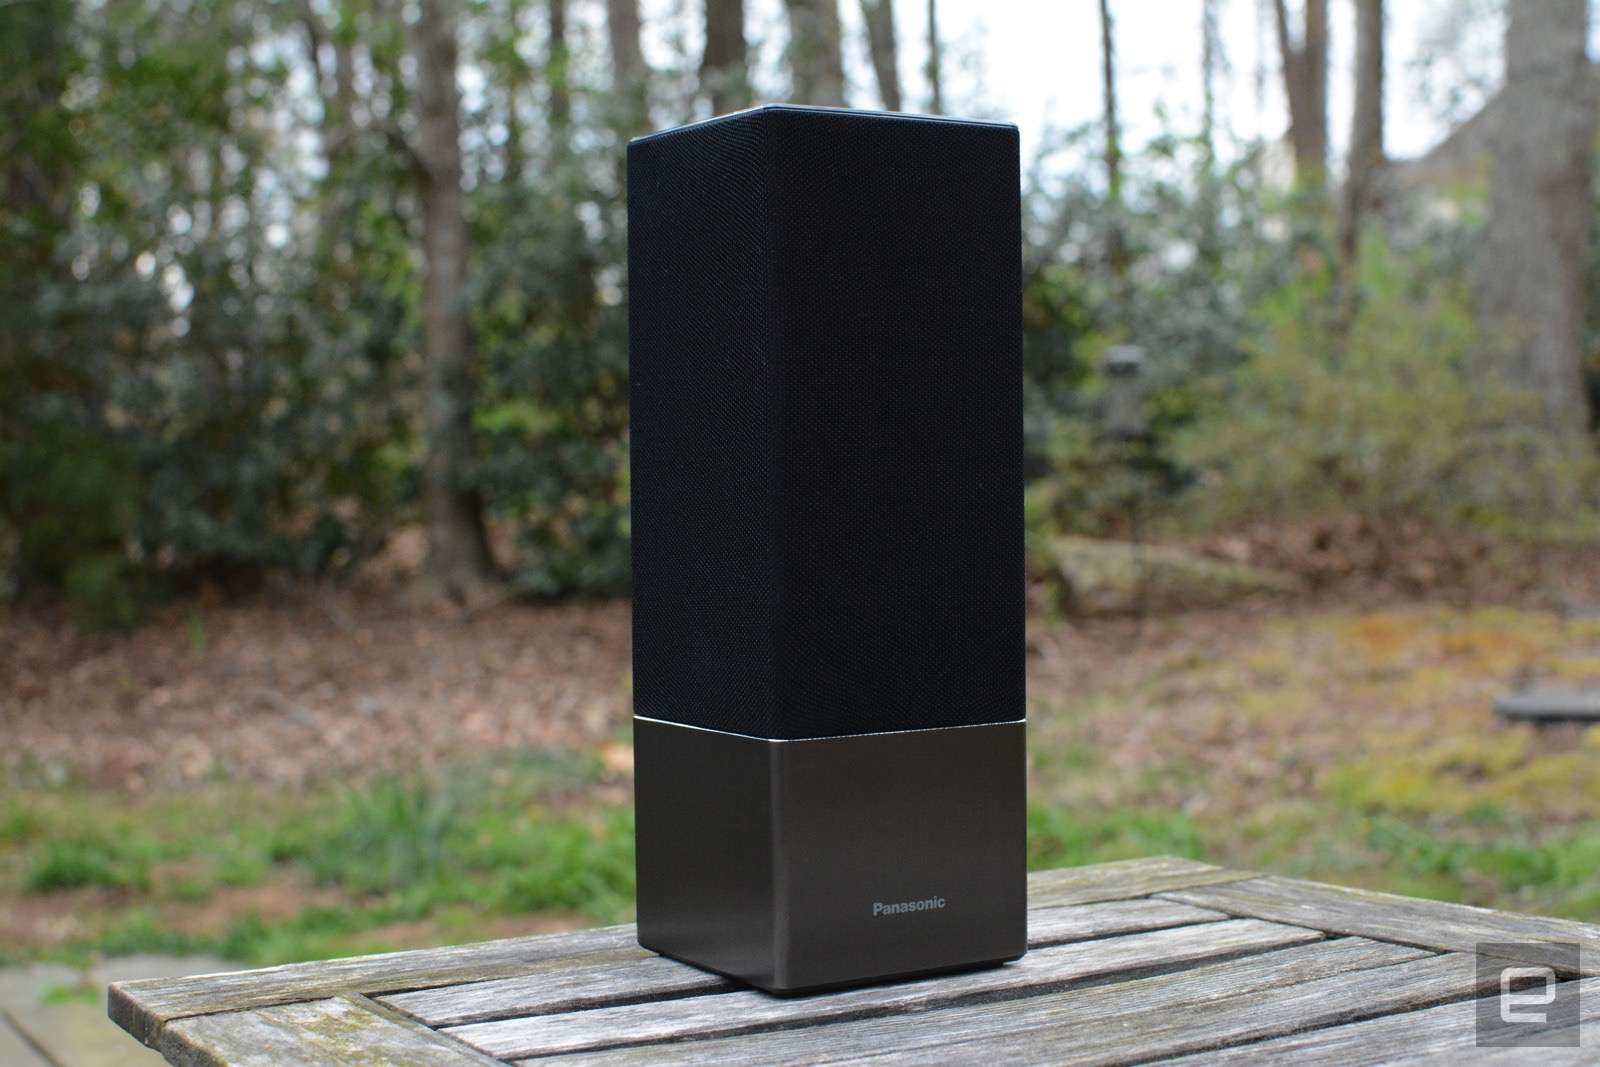 photo image Panasonic SC-GA10 review: A smart speaker that fails to stand out